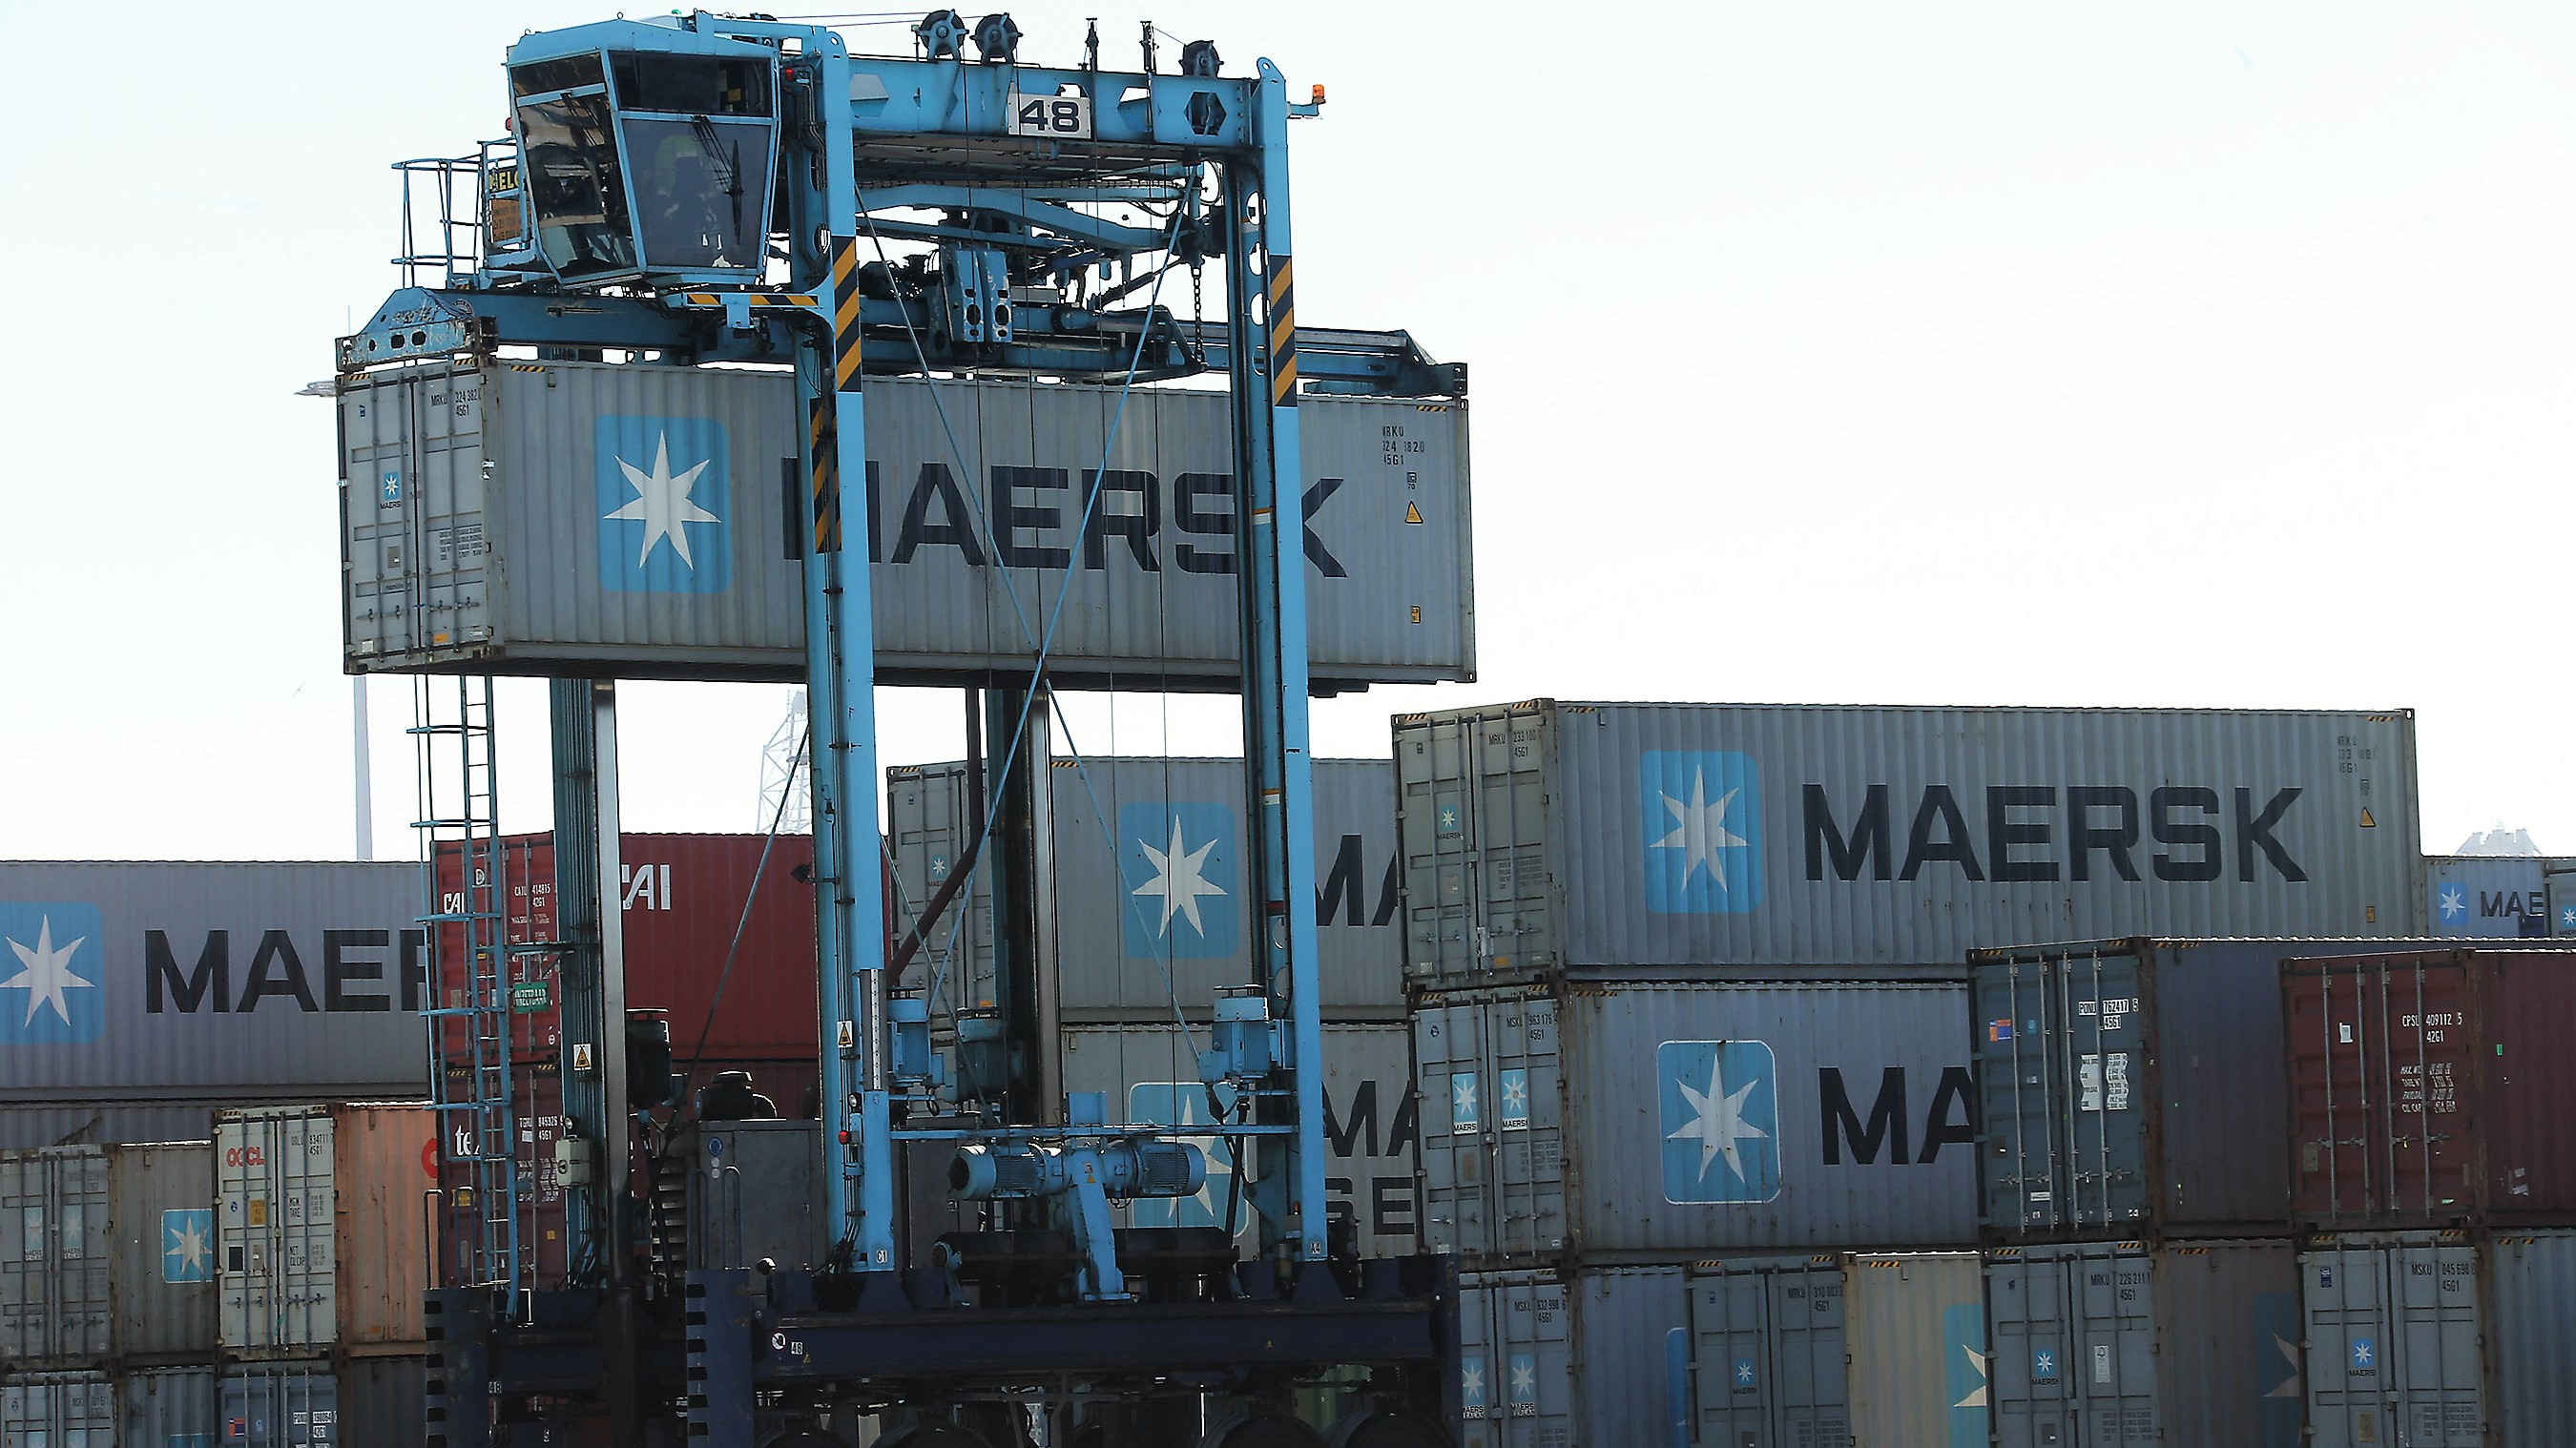 Maersk records highest amount of idled fleet capacity in 10 years 1